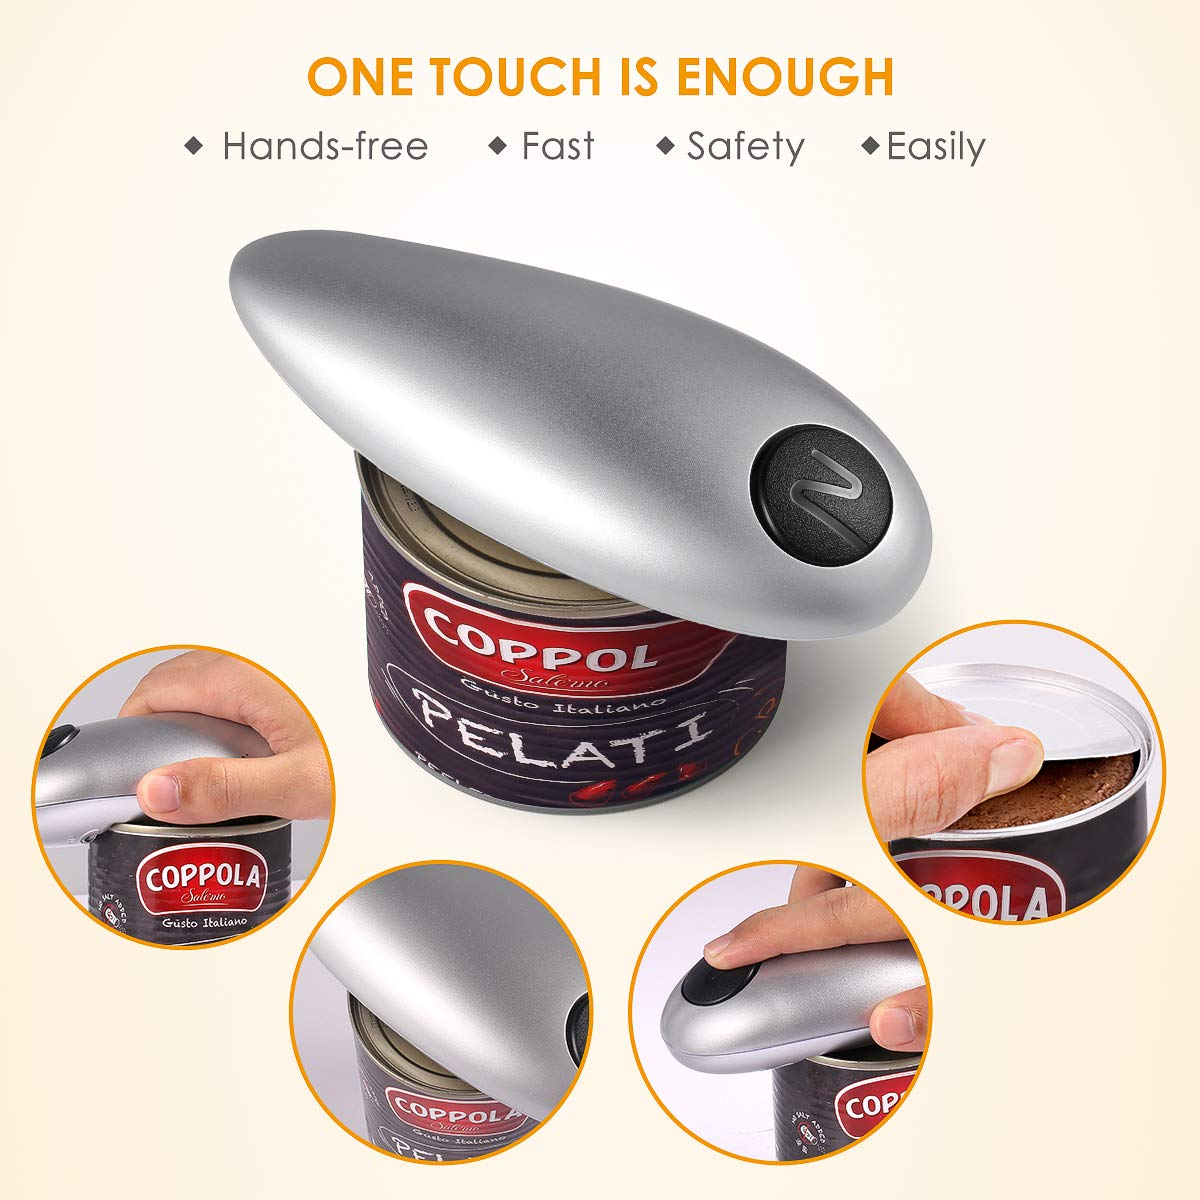 Electric Can Opener, Smooth Edge Automatic Can Opener for Any Size, Best Kitchen Gadget for Arthritis and Seniors (GrayClassic1) by instecho (Image #5)